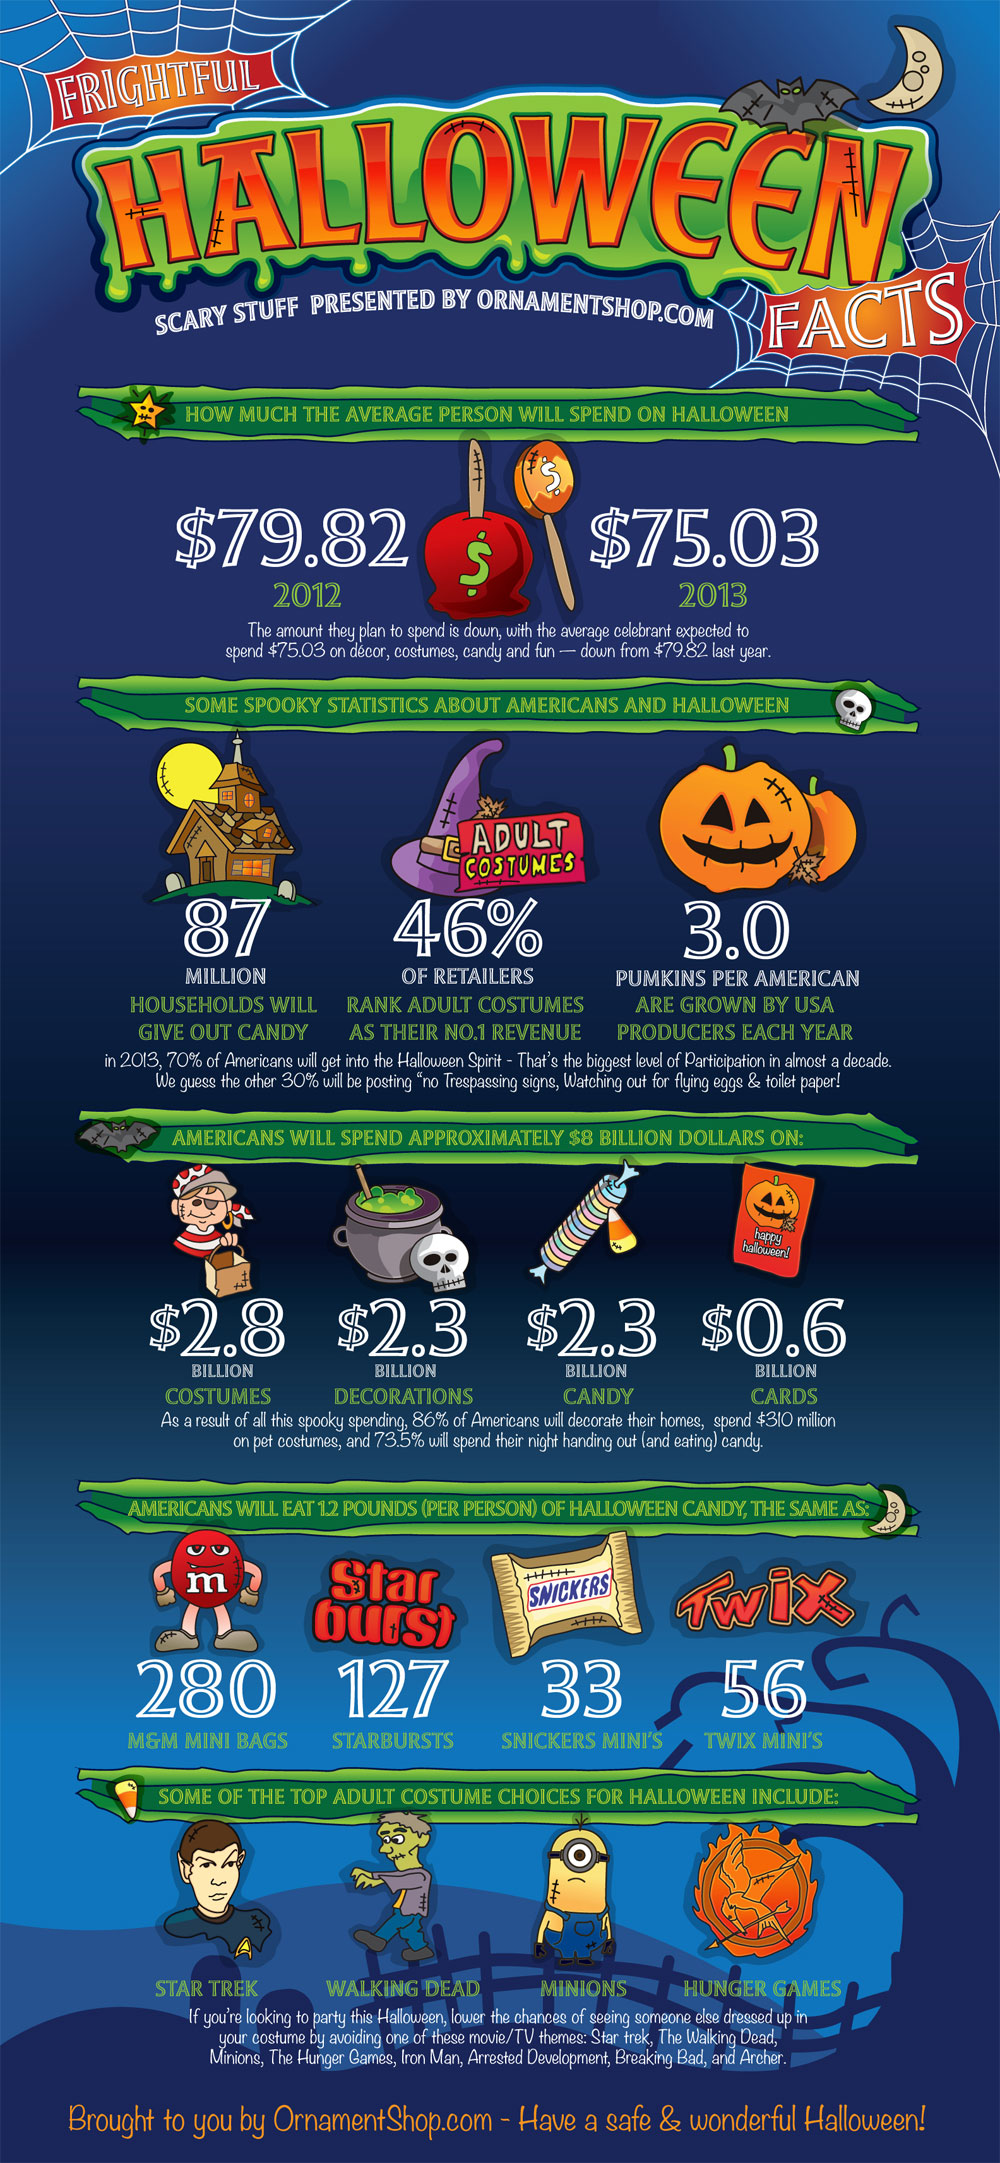 fun facts about halloween ornaments, costumes & more |